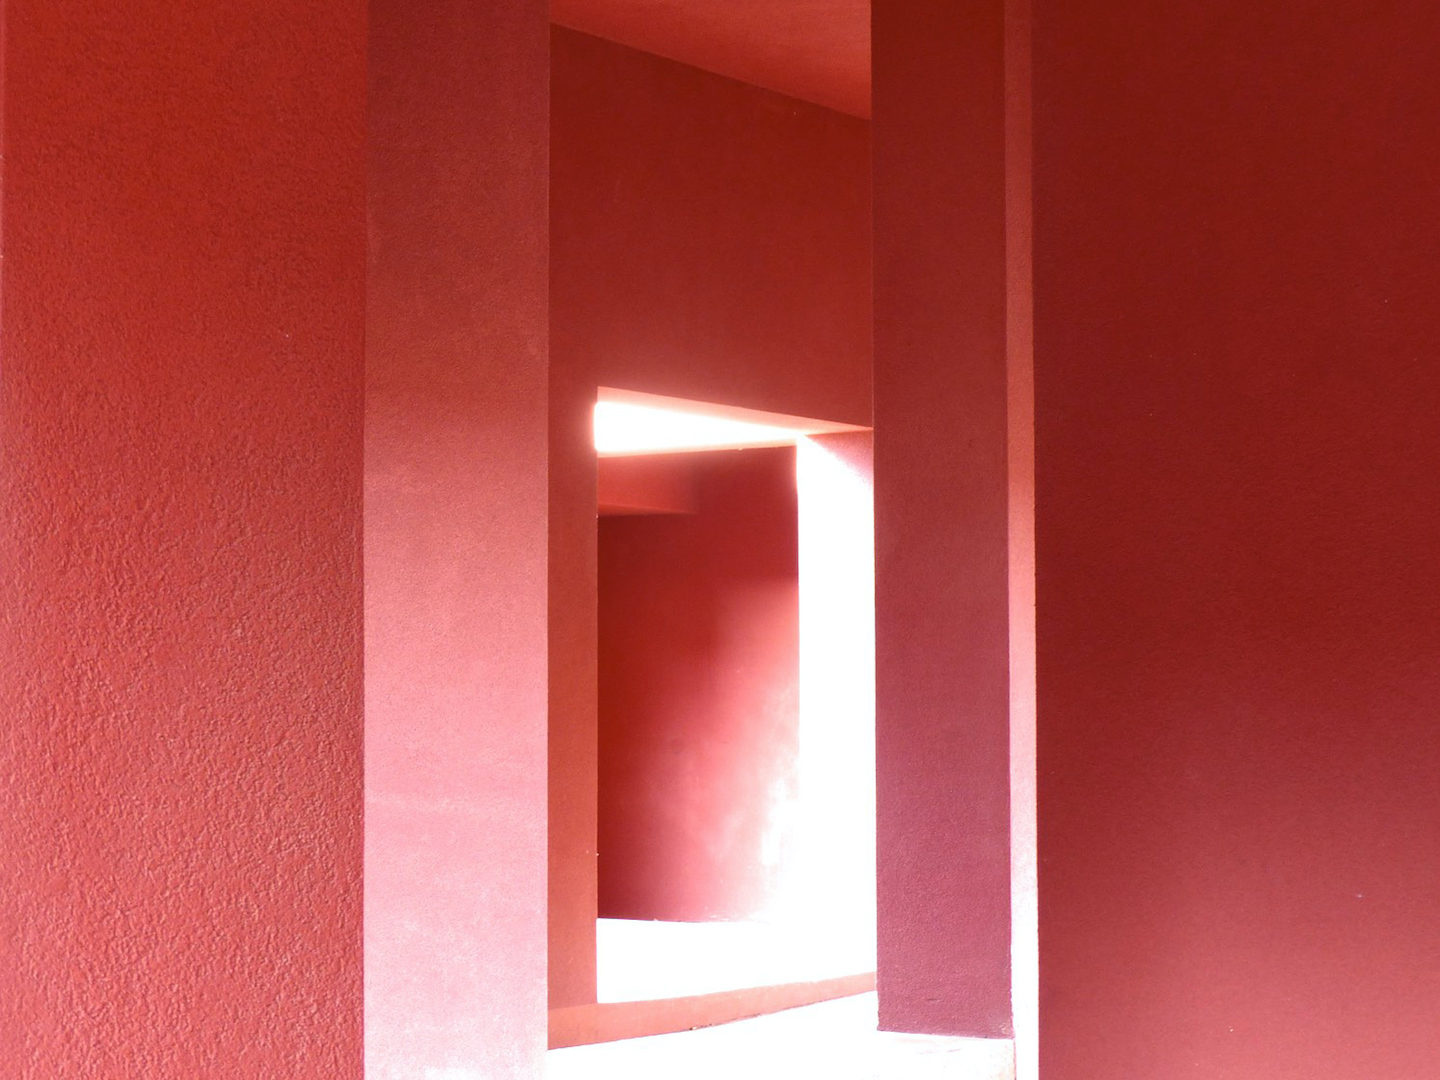 Dan Shaffer: Red Hallways